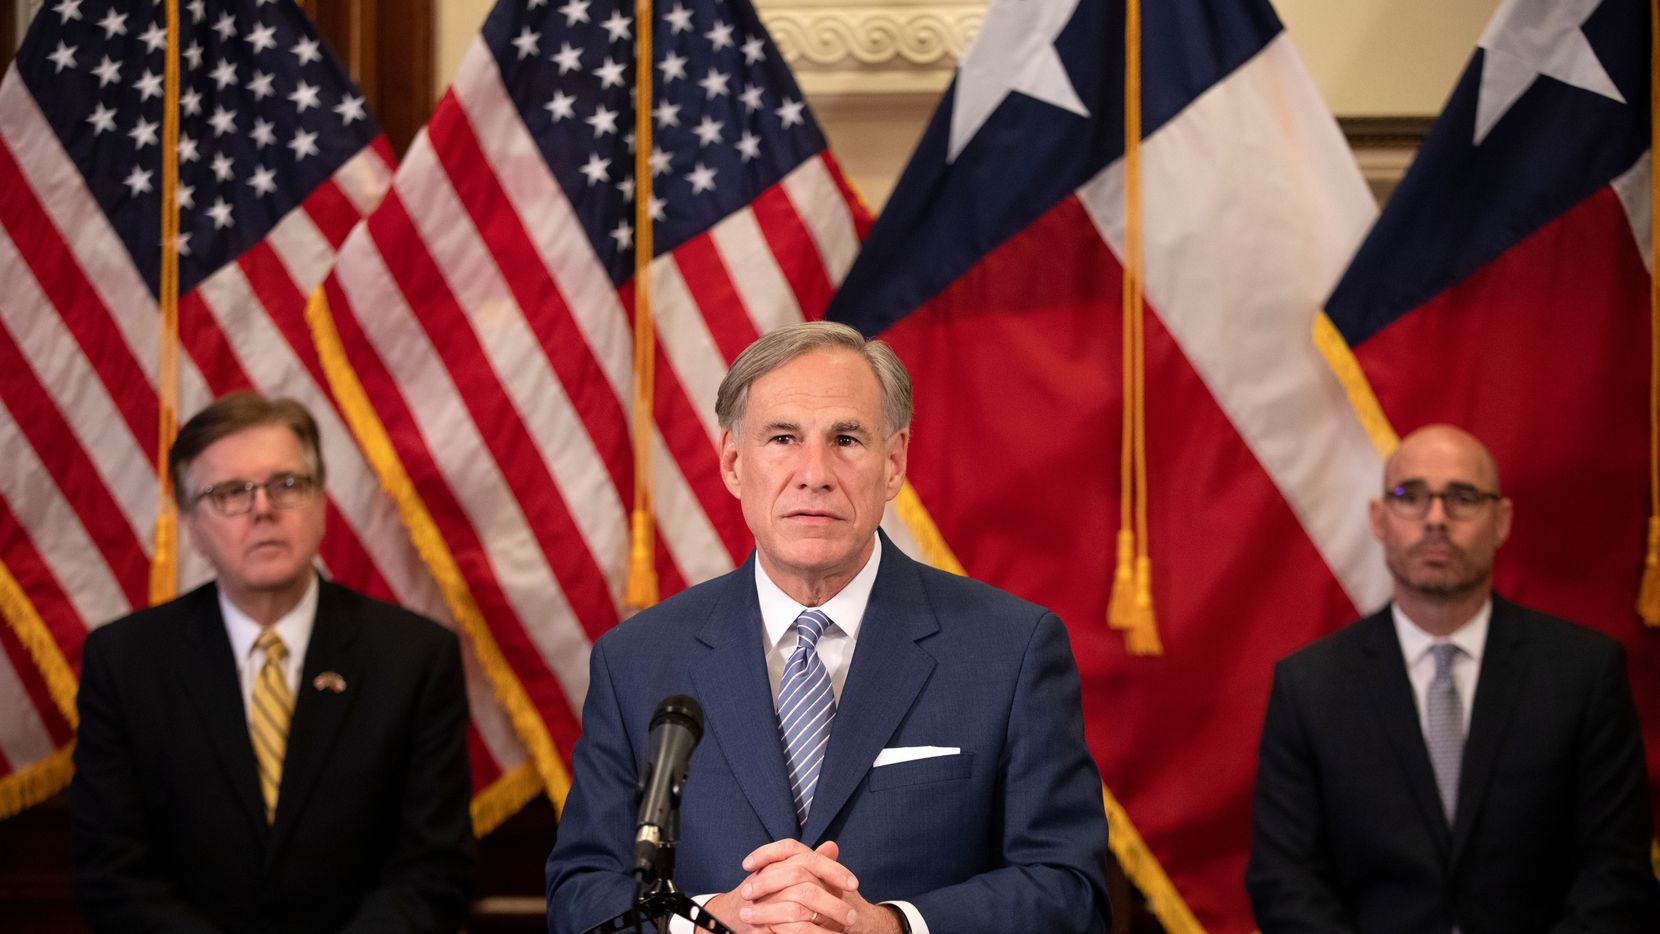 Many of the questions about politics next year will depend on how the state's top three officials get along. House Speaker Dennis Bonnen (right) will not return to the Texas House and his replacement will have to find a way to work with Lt. Gov. Dan Patrick (left) in the Senate who is more aligned with the Republican party's right wing. Gov. Greg Abbott (center) faces a crucial session before his re-election campaign in 2022.